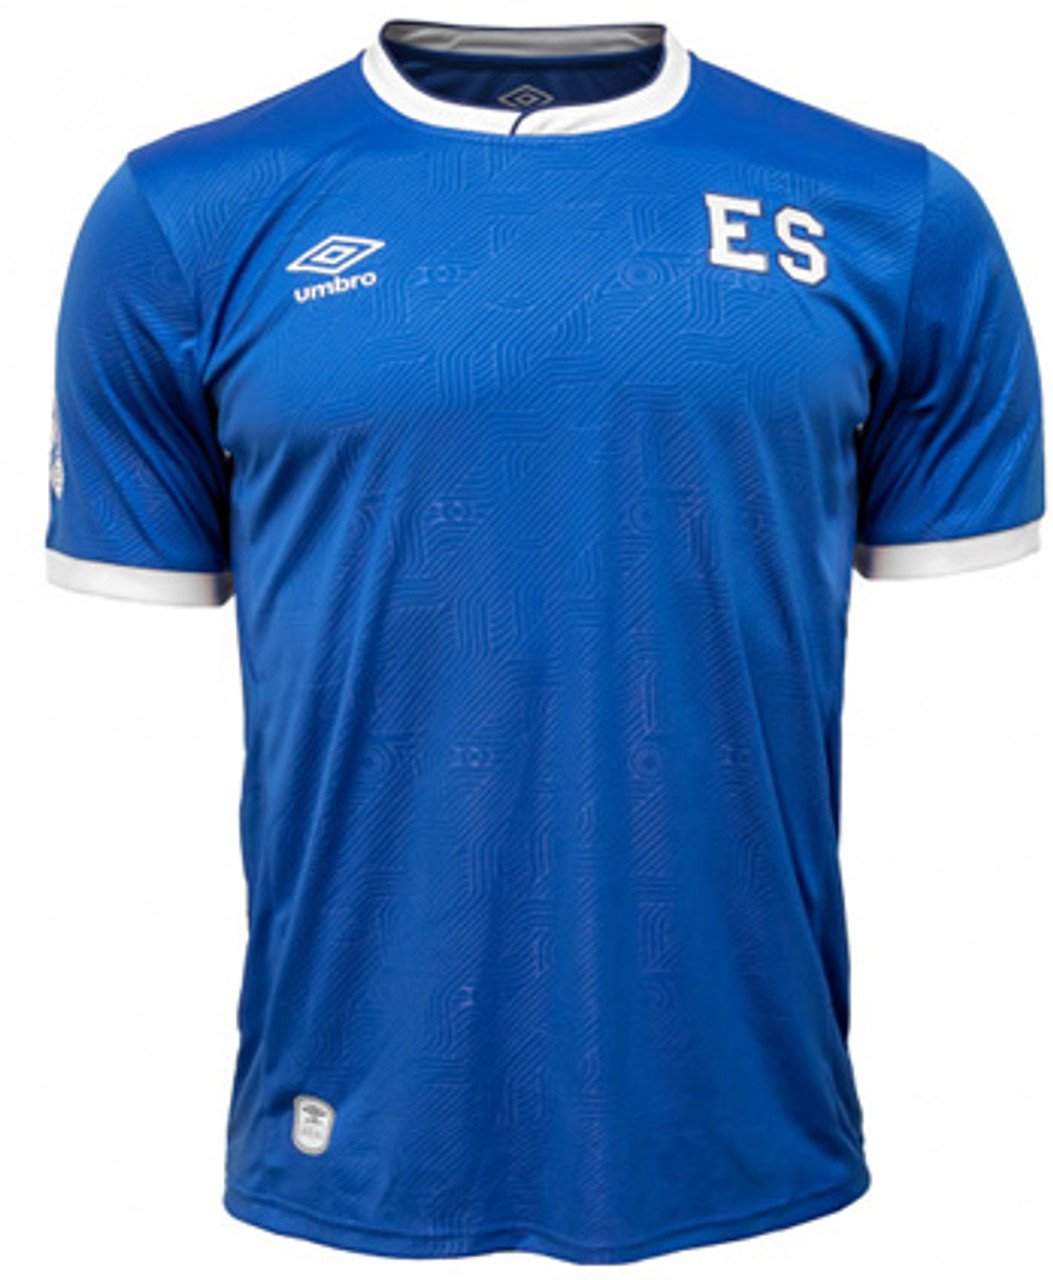 sports shoes 3f9f7 55f18 UMBRO EL SALVADOR 2018 HOME JERSEY BLUE